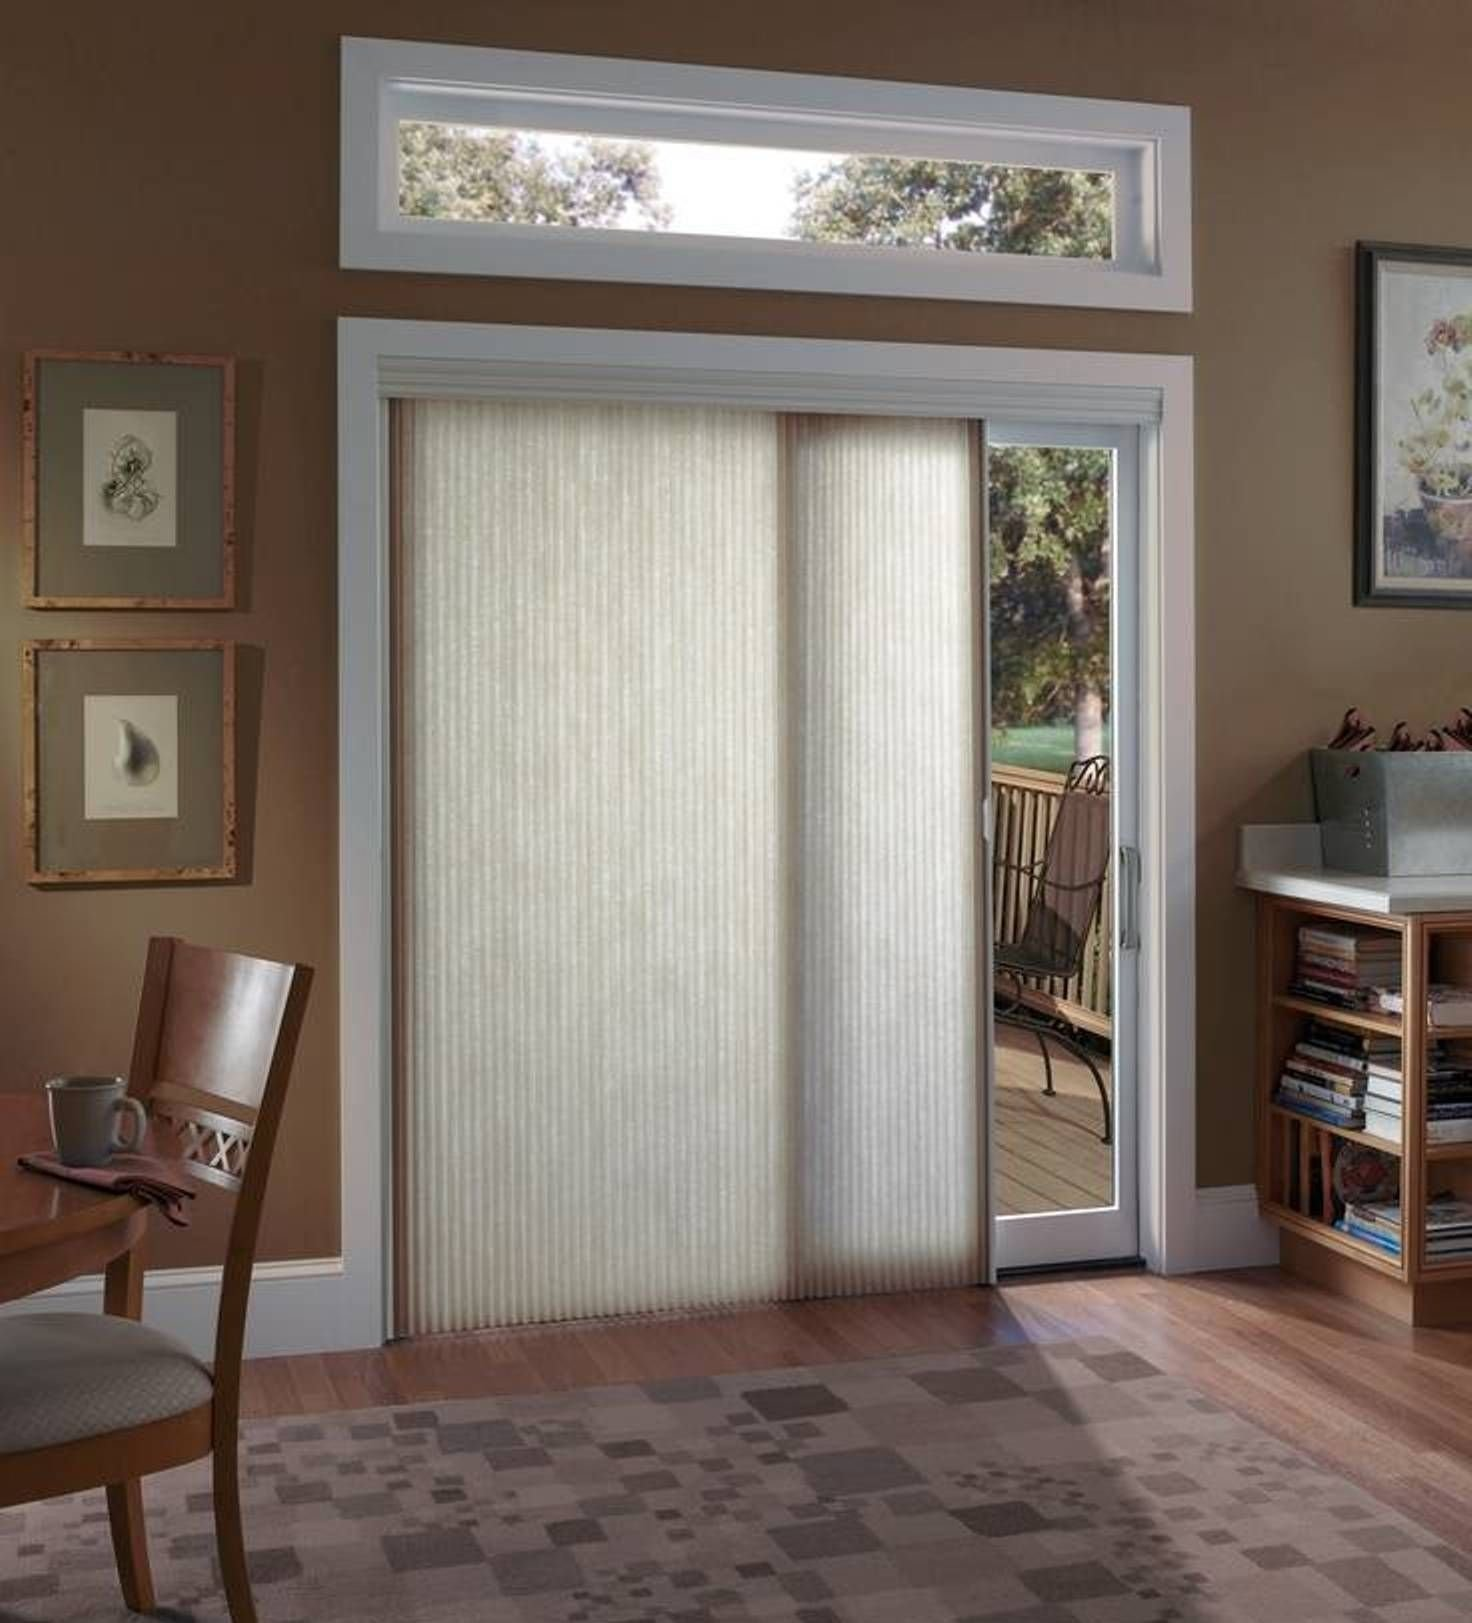 10 Beautiful Ideas For Sliding Glass Doors actually providing sliding glass door for your interior house 6 2020